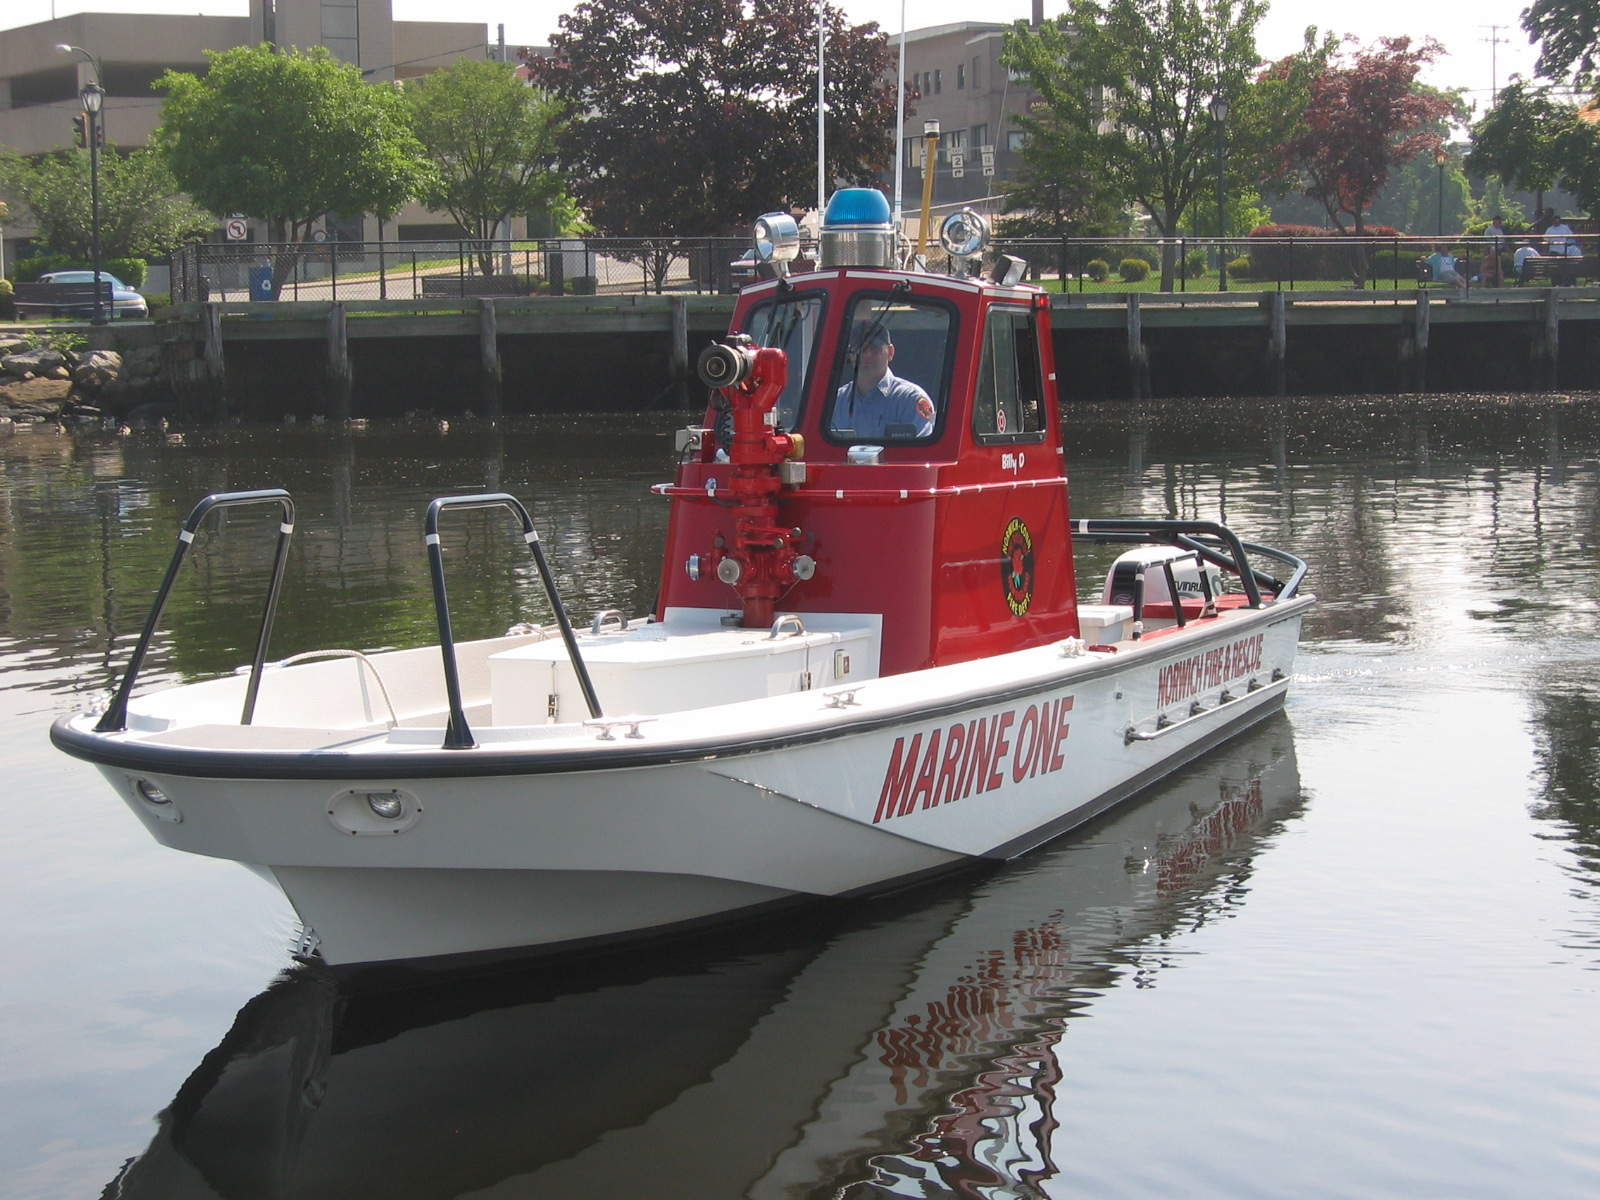 Marine 1 Fire/Rescue Boat